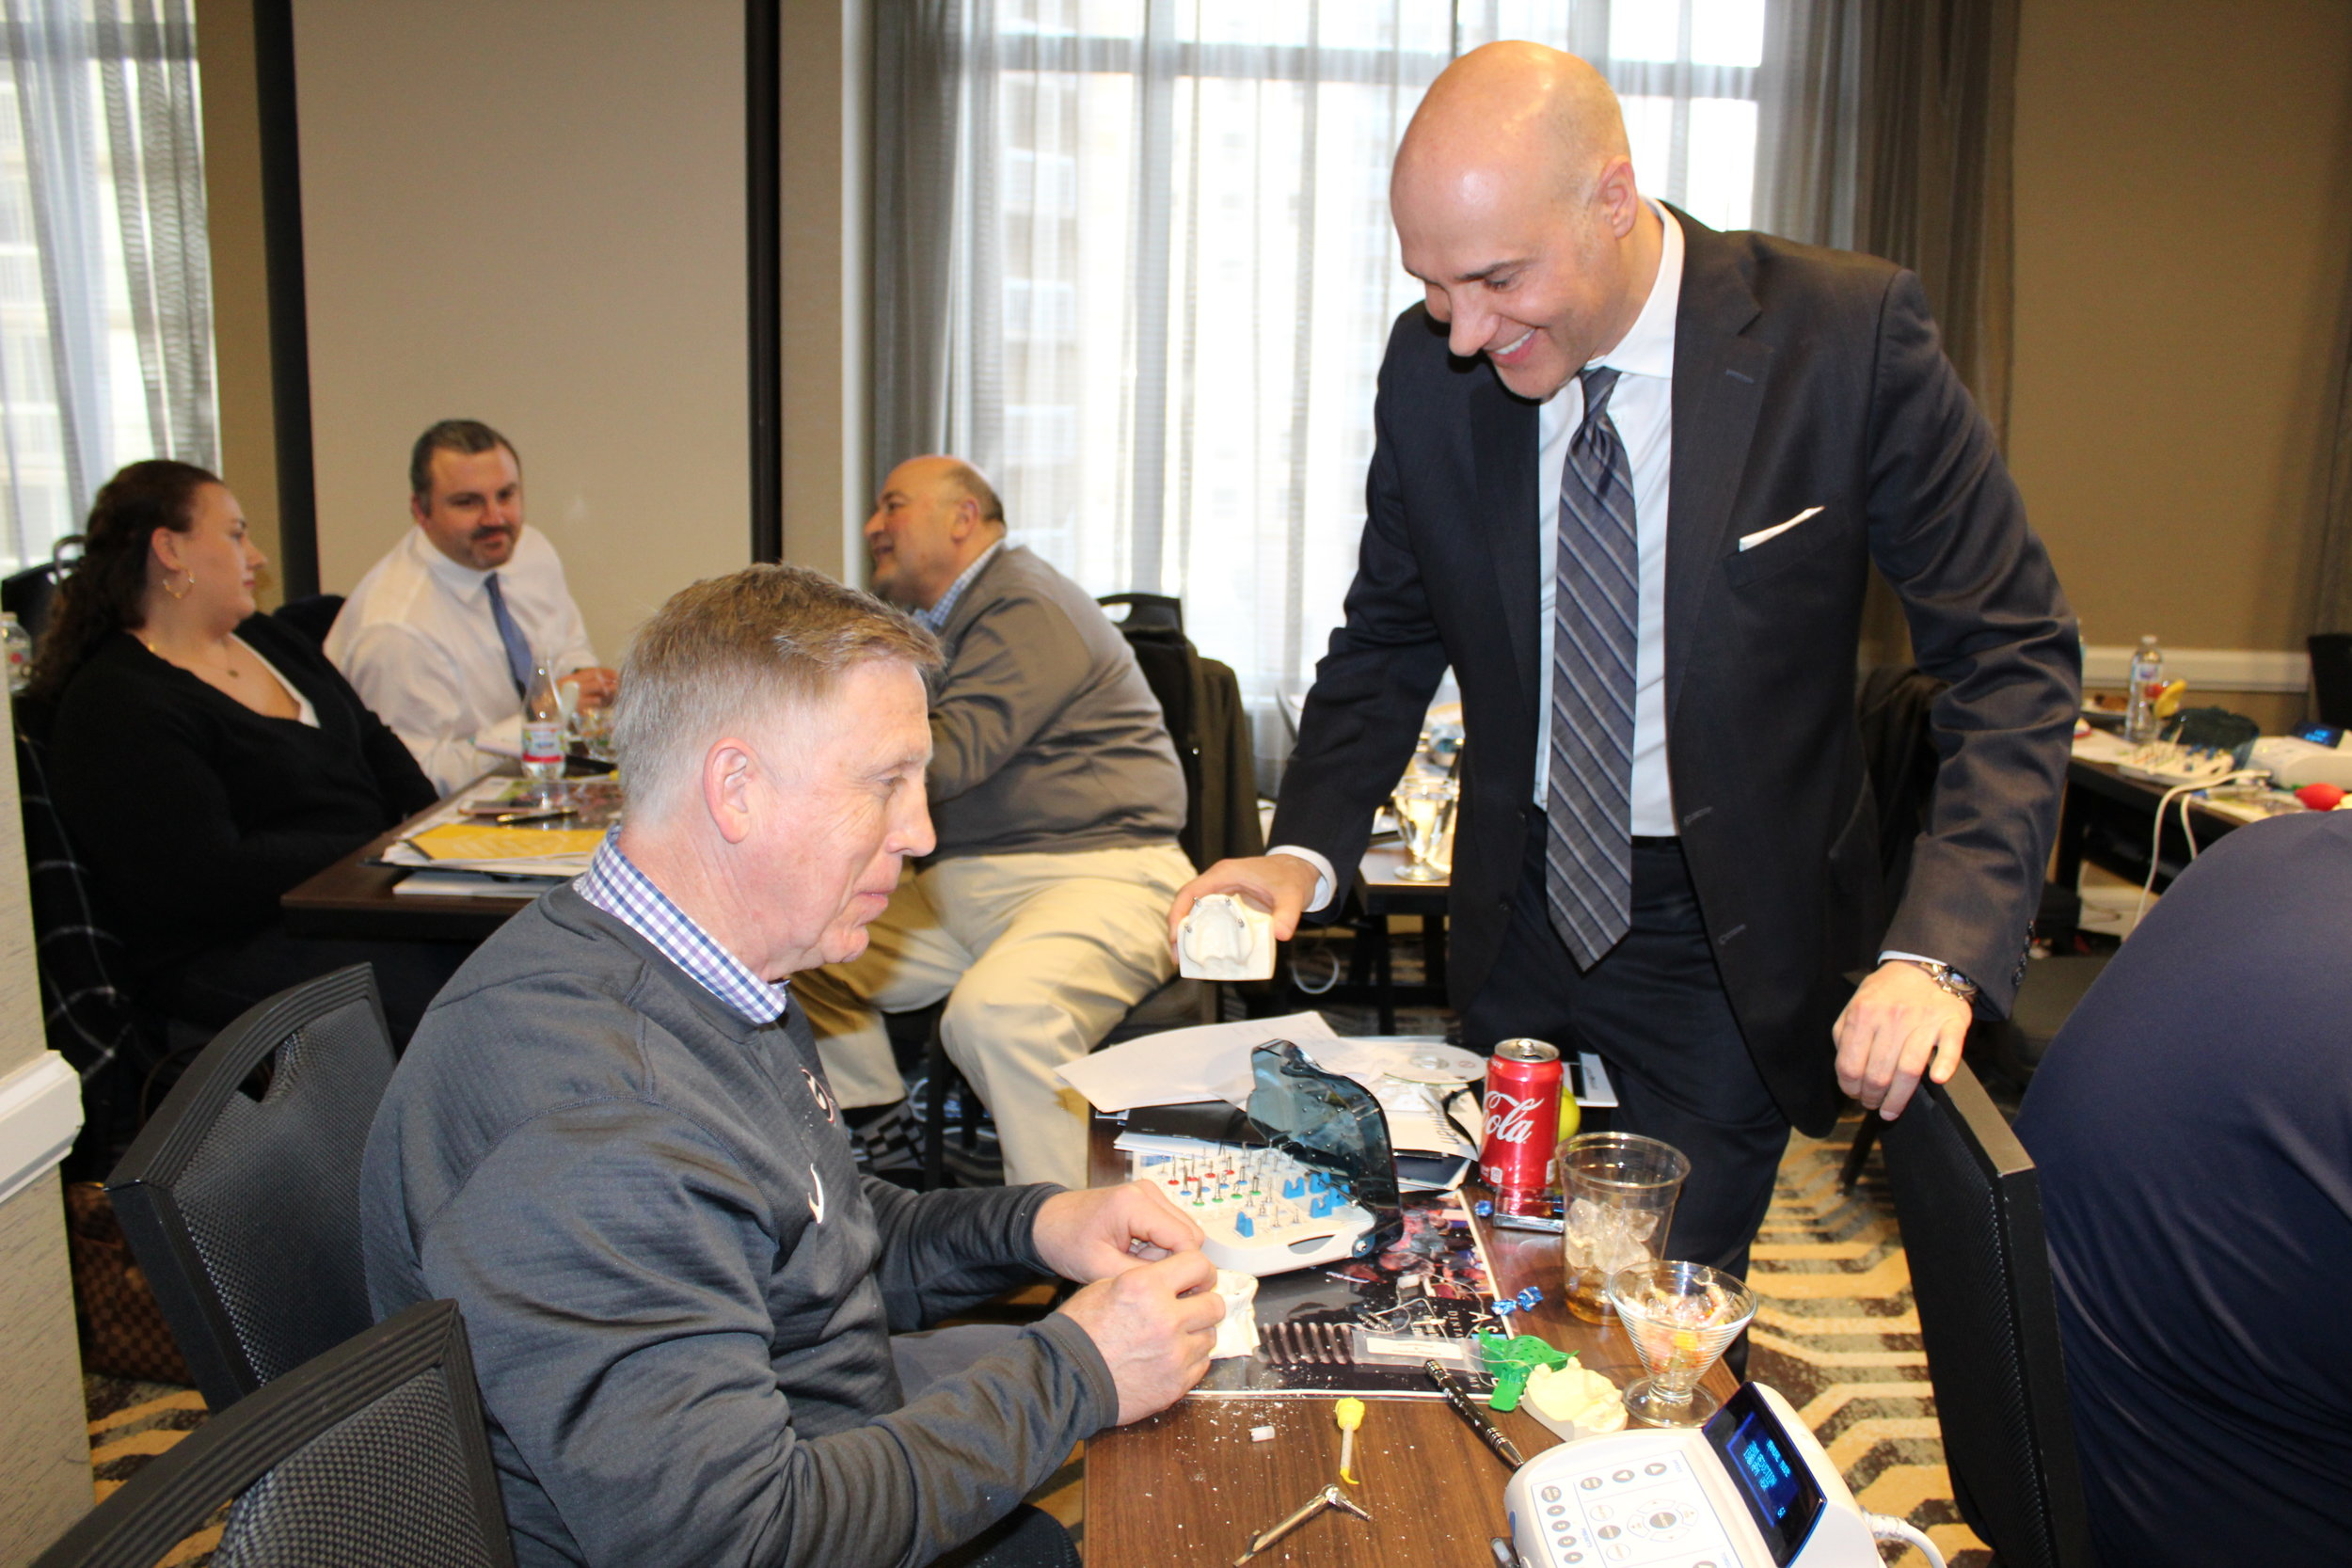 Dr. Nazarian one-on-one mentoring during hands on workshop.